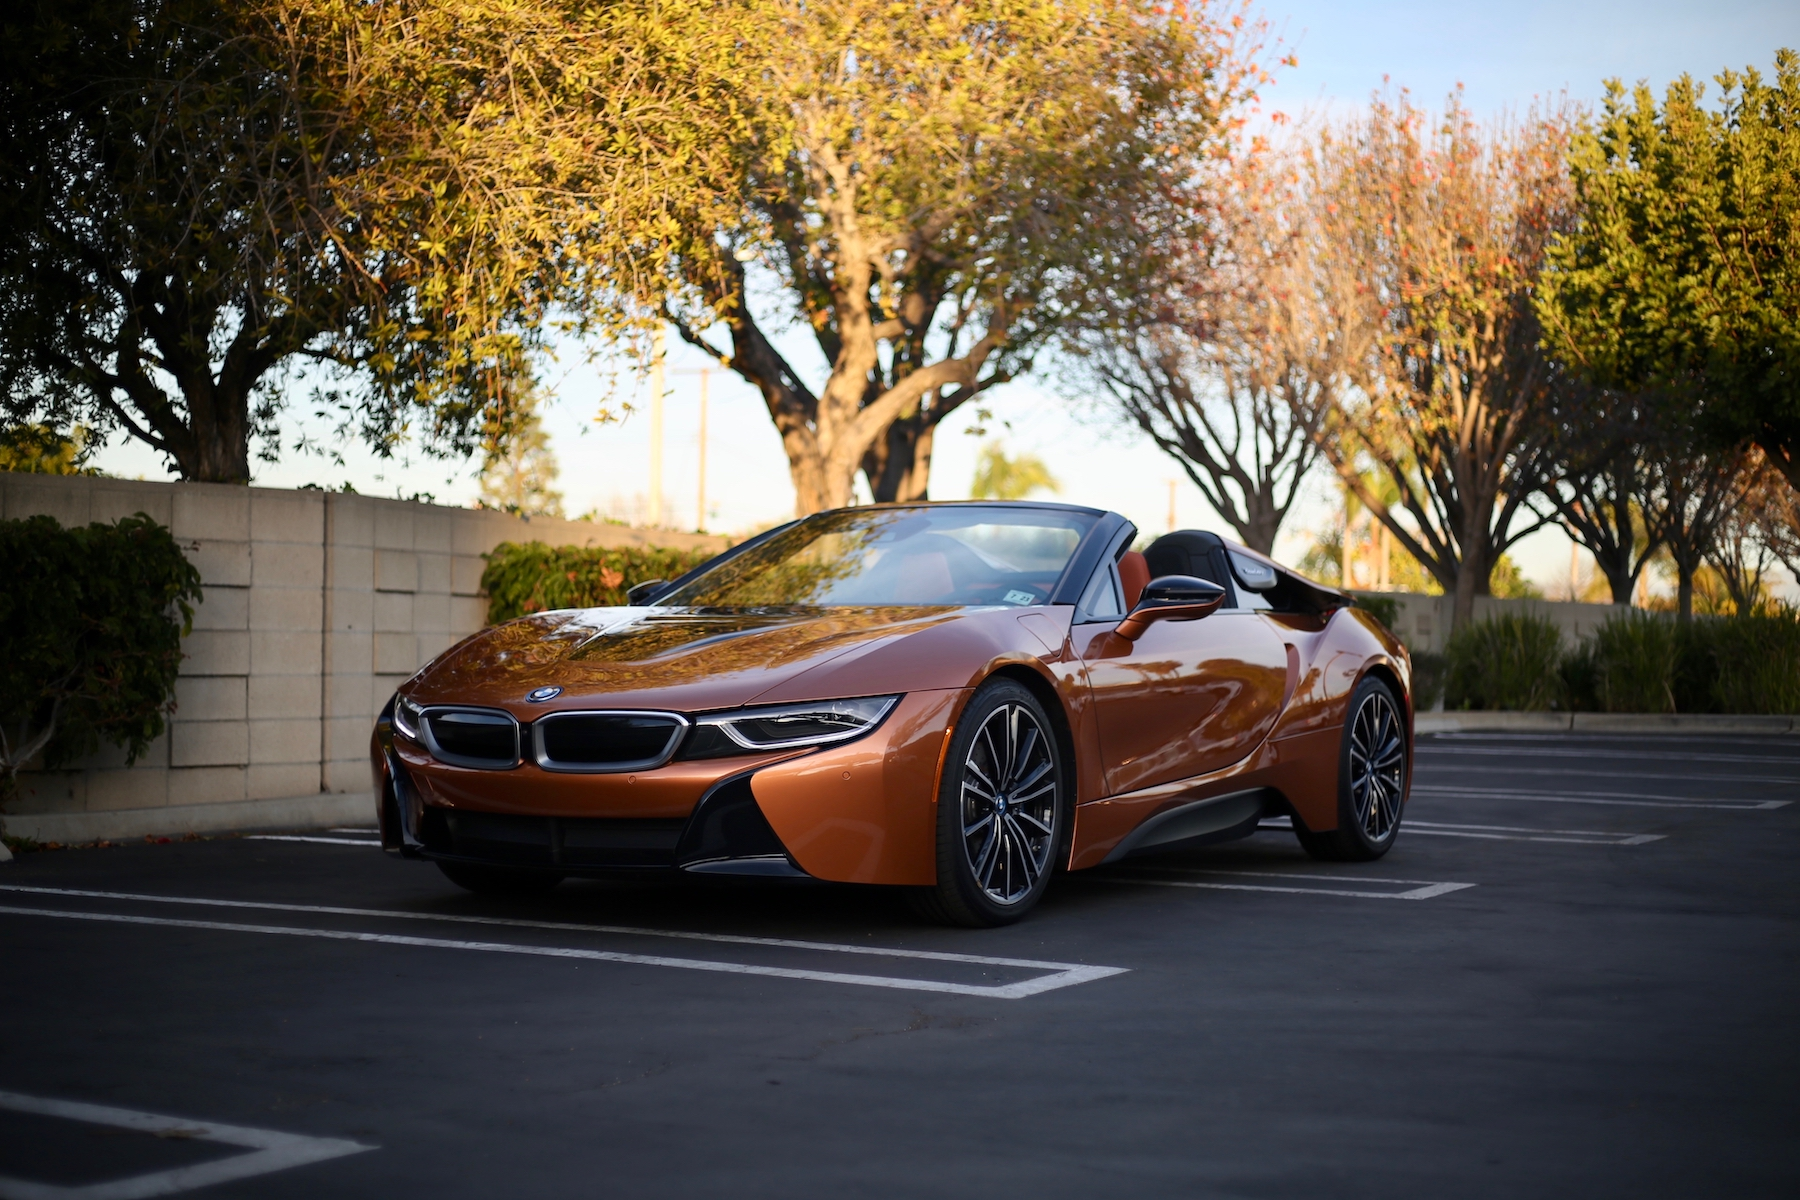 2018 Bmw I8 Roadster Review Pictures Specs Milesperhr